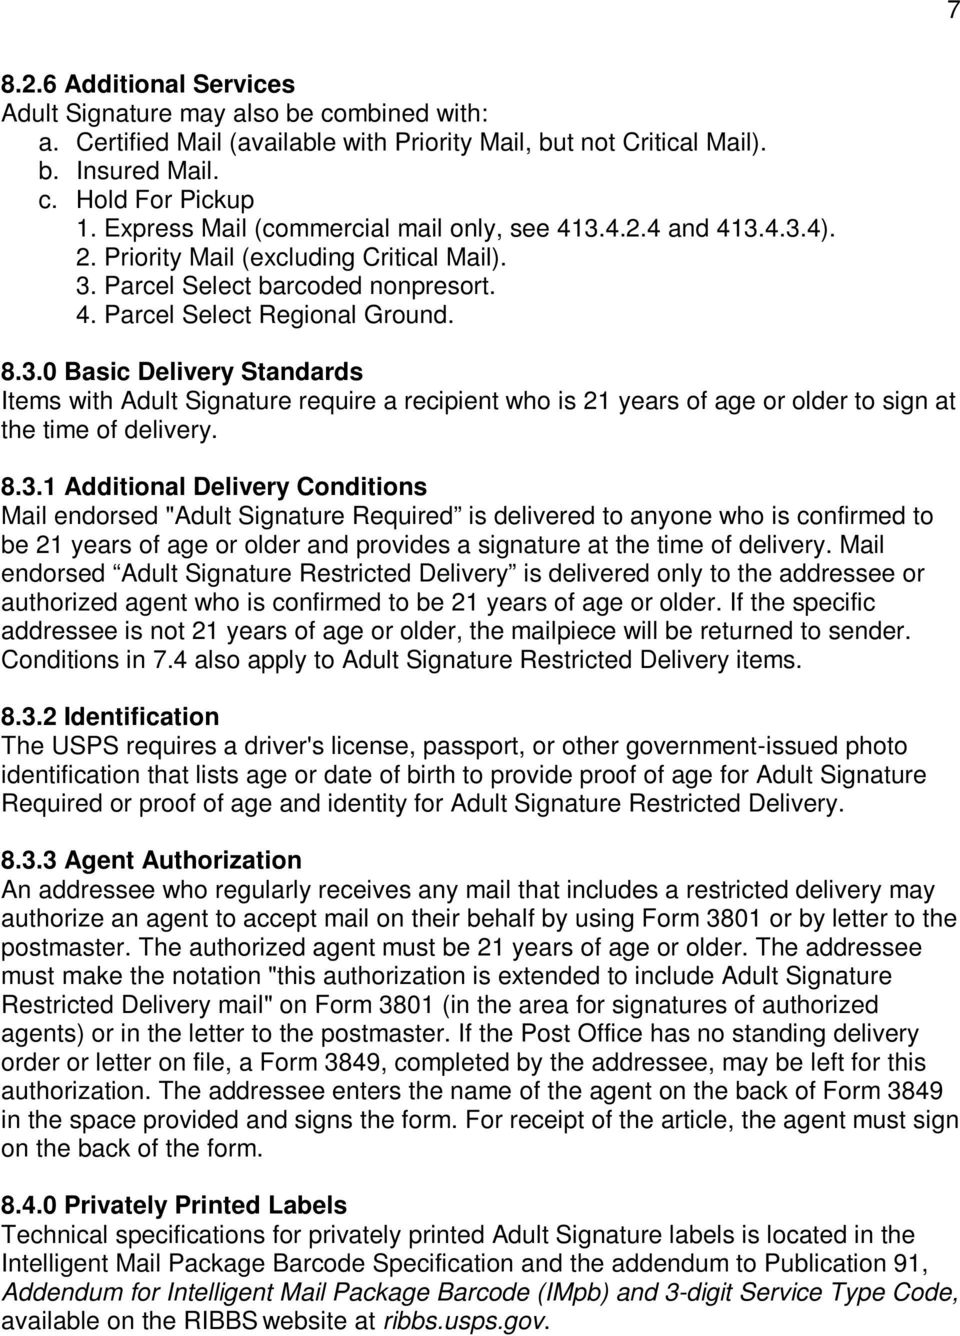 "8.3.1 Additional Delivery Conditions Mail endorsed ""Adult Signature Required is delivered to anyone who is confirmed to be 21 years of age or older and provides a signature at the time of delivery."